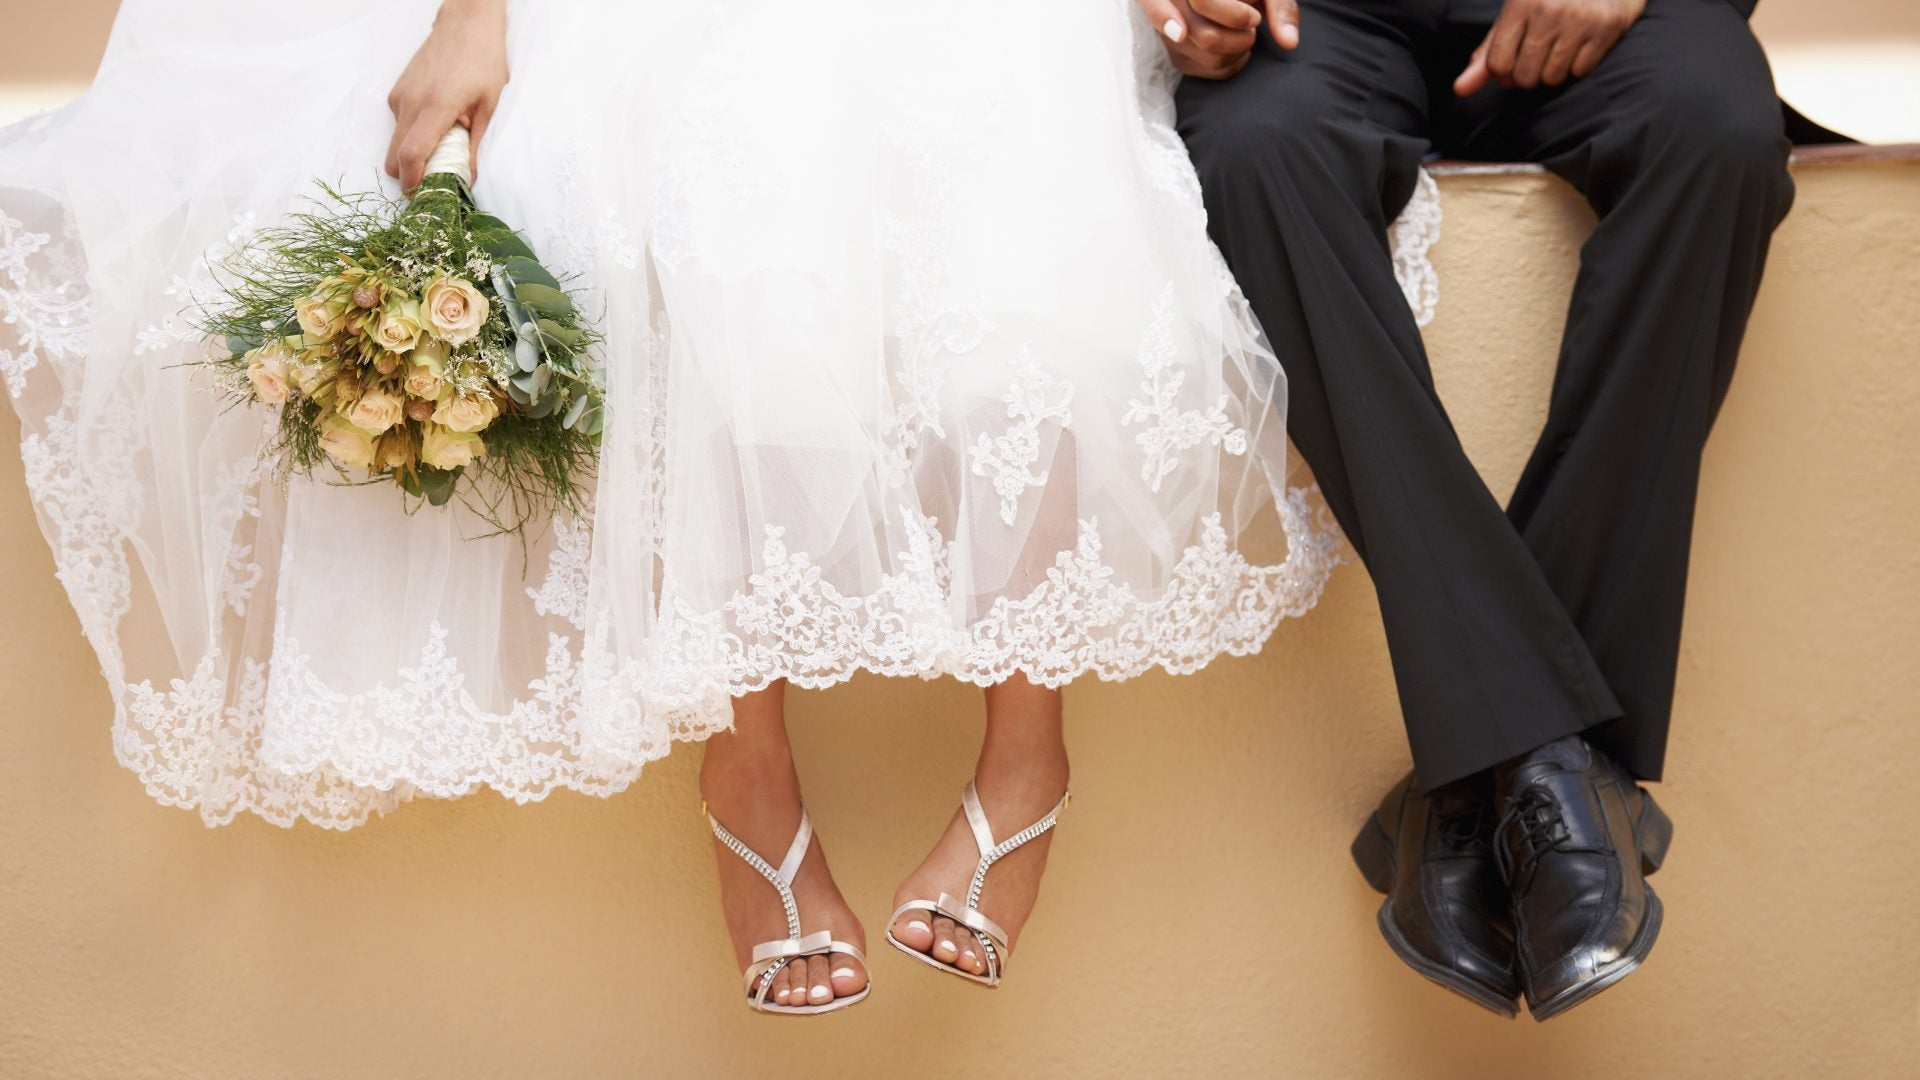 Study Finds The Average Cost Of A Wedding Equals A Year Of Private College